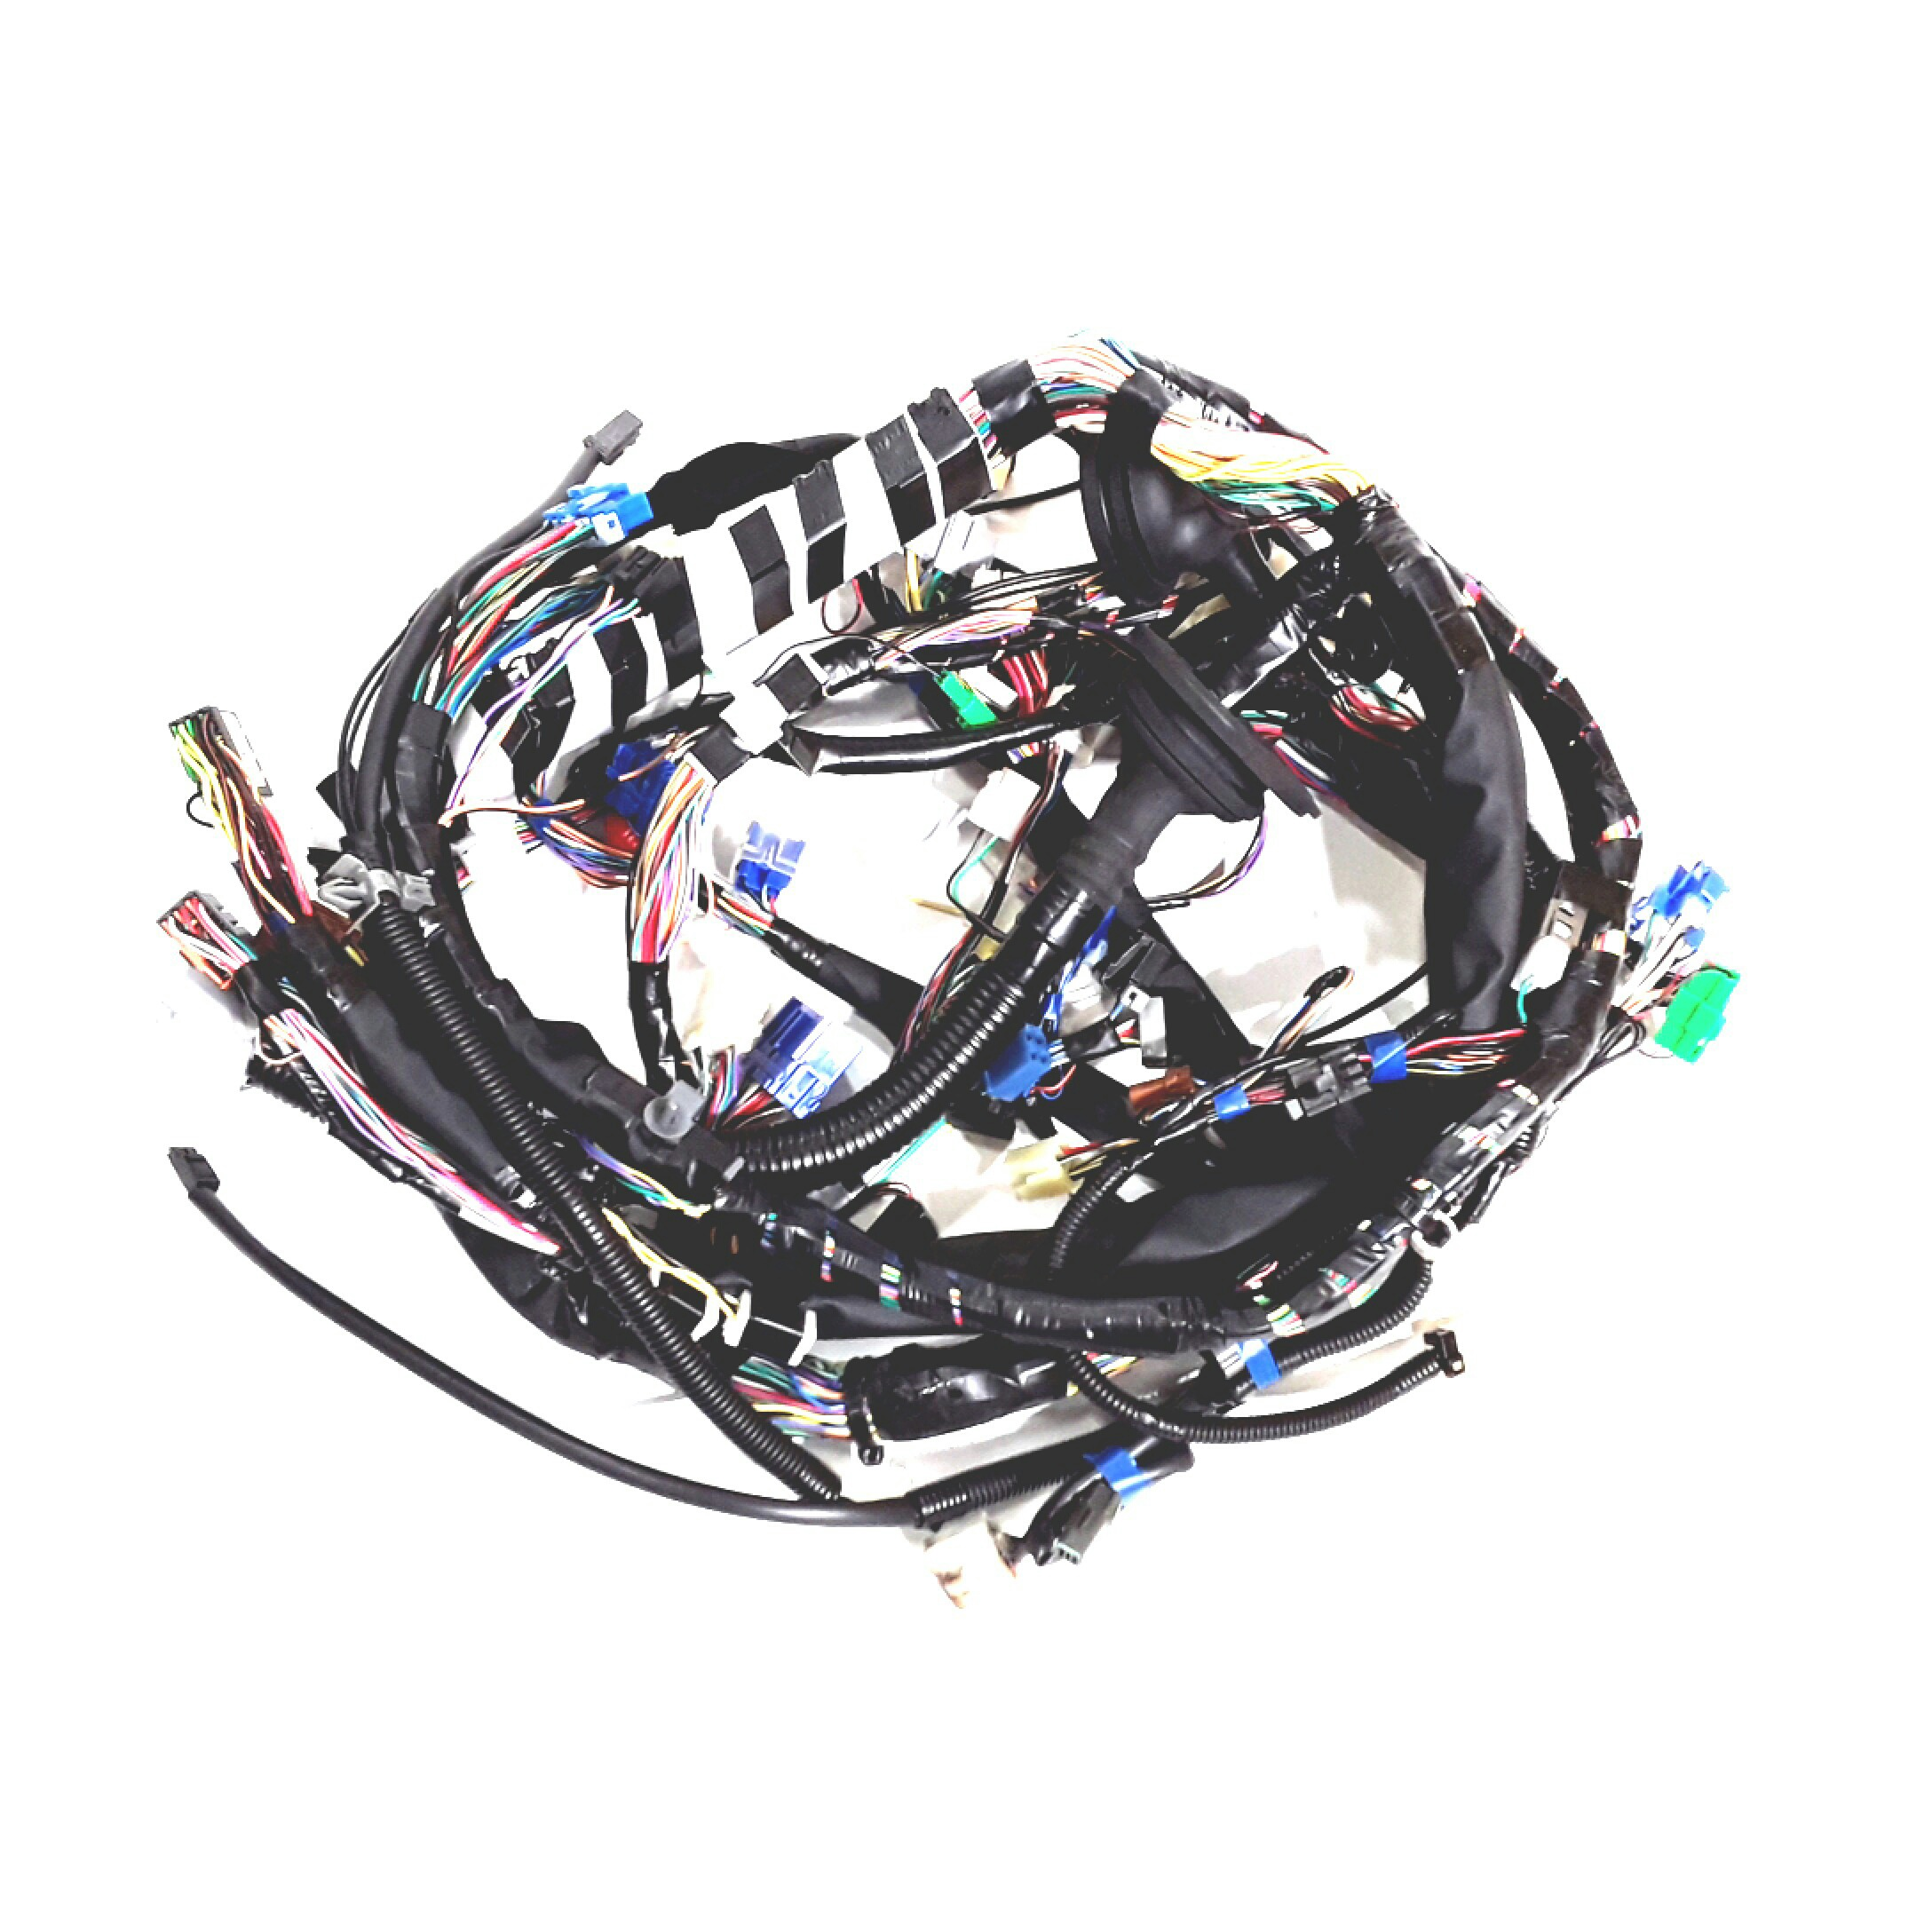 Subaru Bulkhead Wiring Harness : Fc harness bulkhead genuine subaru part